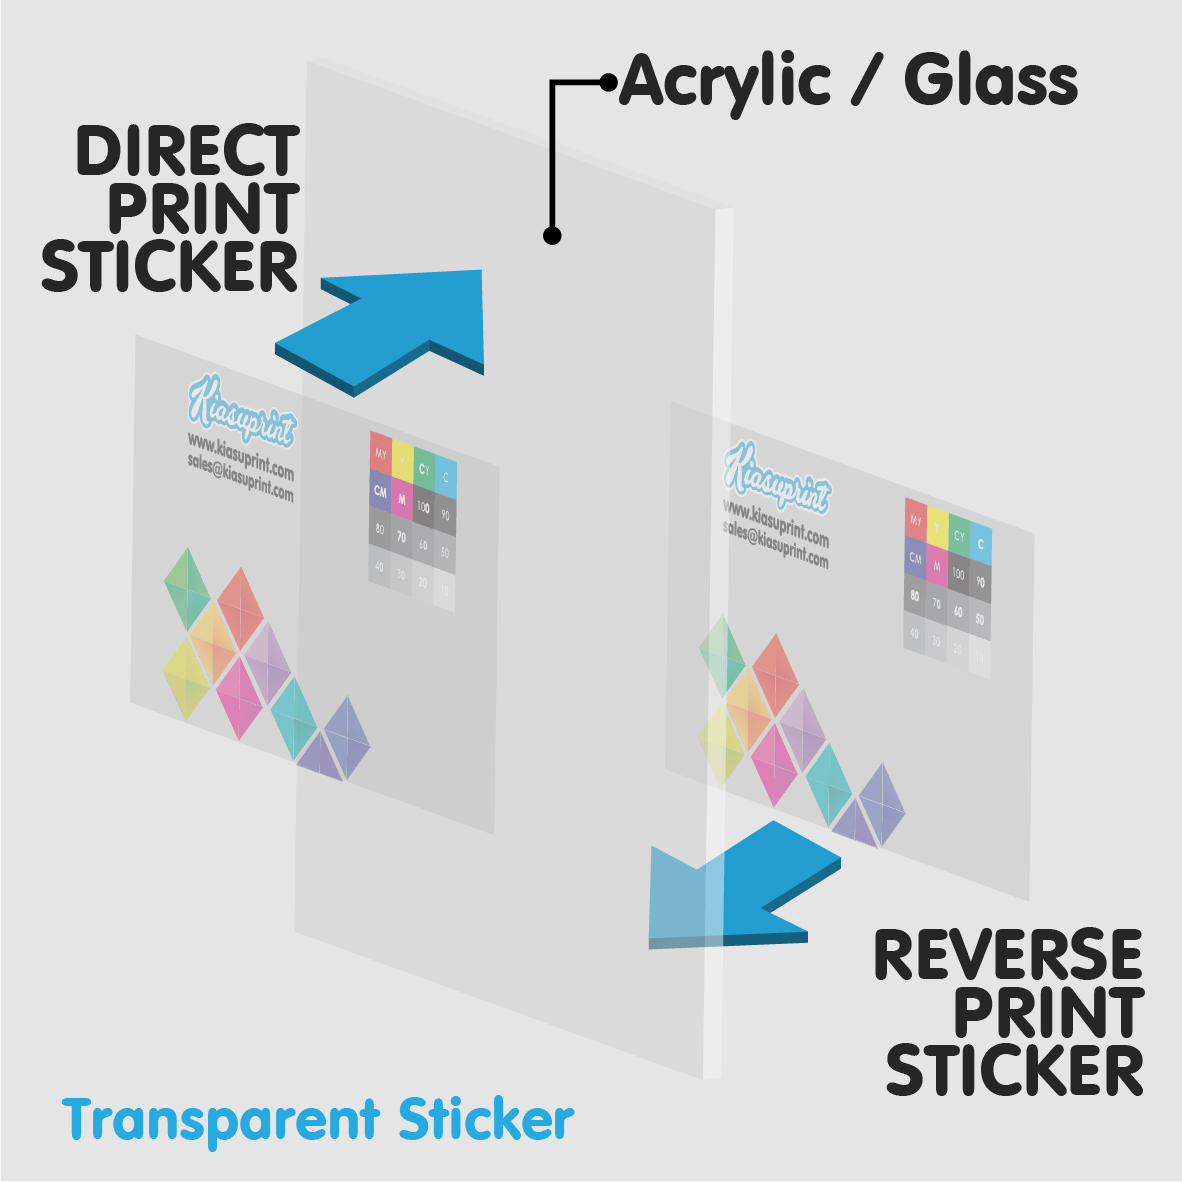 Get your own transparent stickers today send us a email saleskiasuprint com or whatsapp message 65 81820938 to be guided through the process